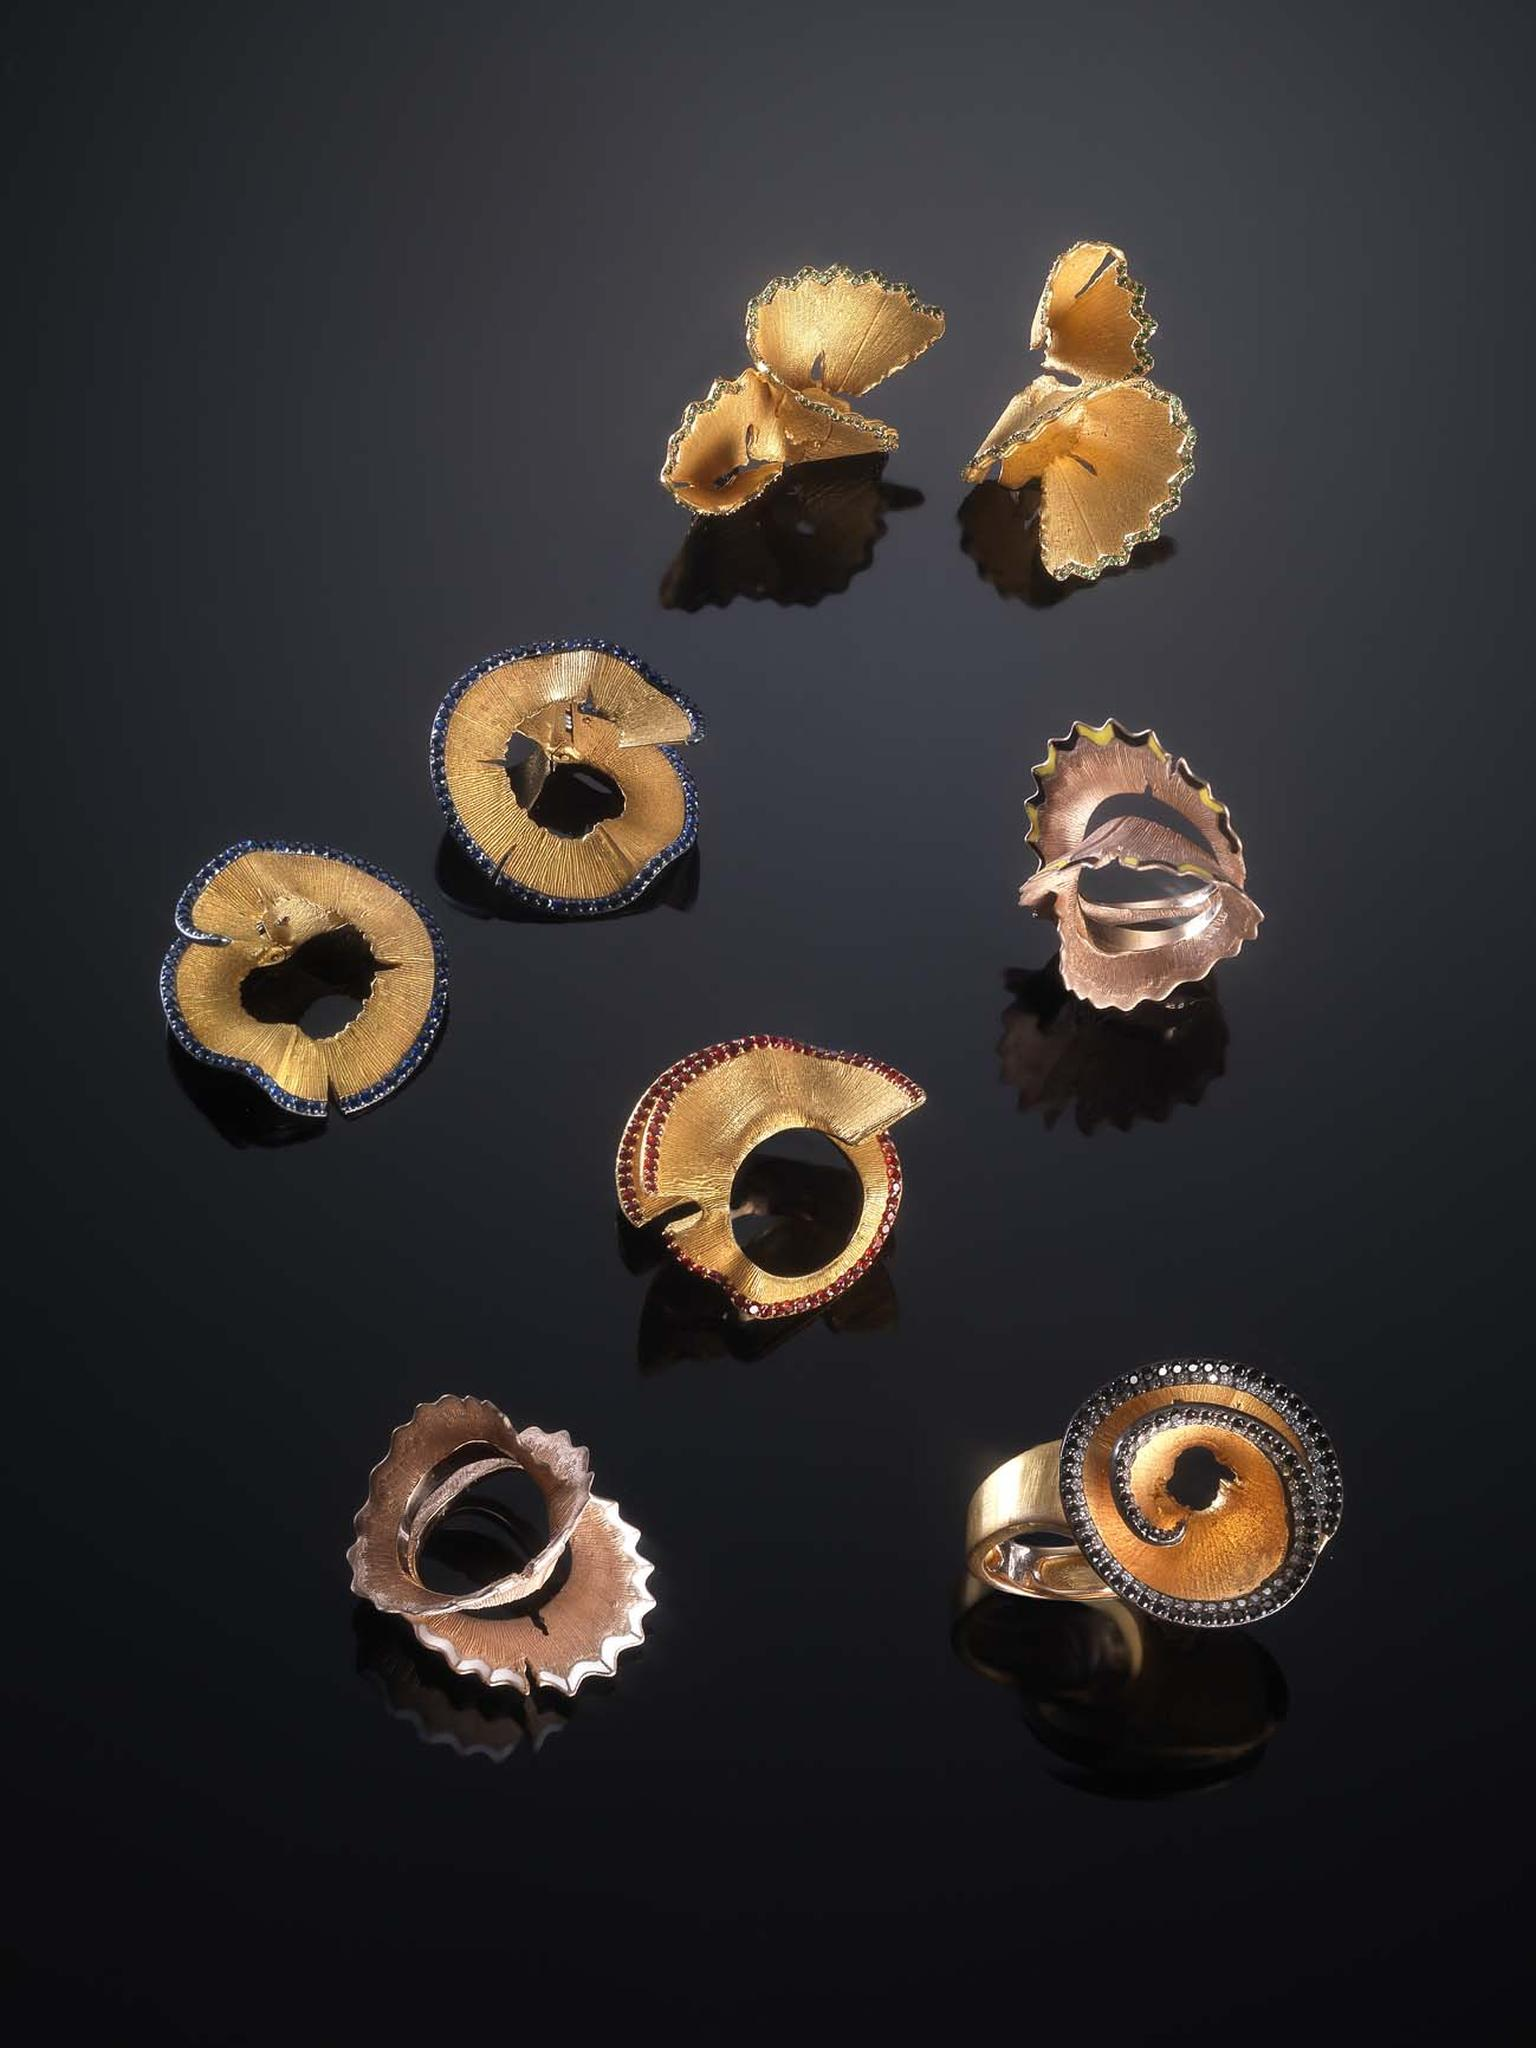 The new Pencil Shavings jewellery collection by Luz Camino is inspired by the humble wood shavings produced after sharpening a pencil. Crafted from gold with details in enamel and precious stones, the collection is on show now at Bergdorf Goodman, New Yor